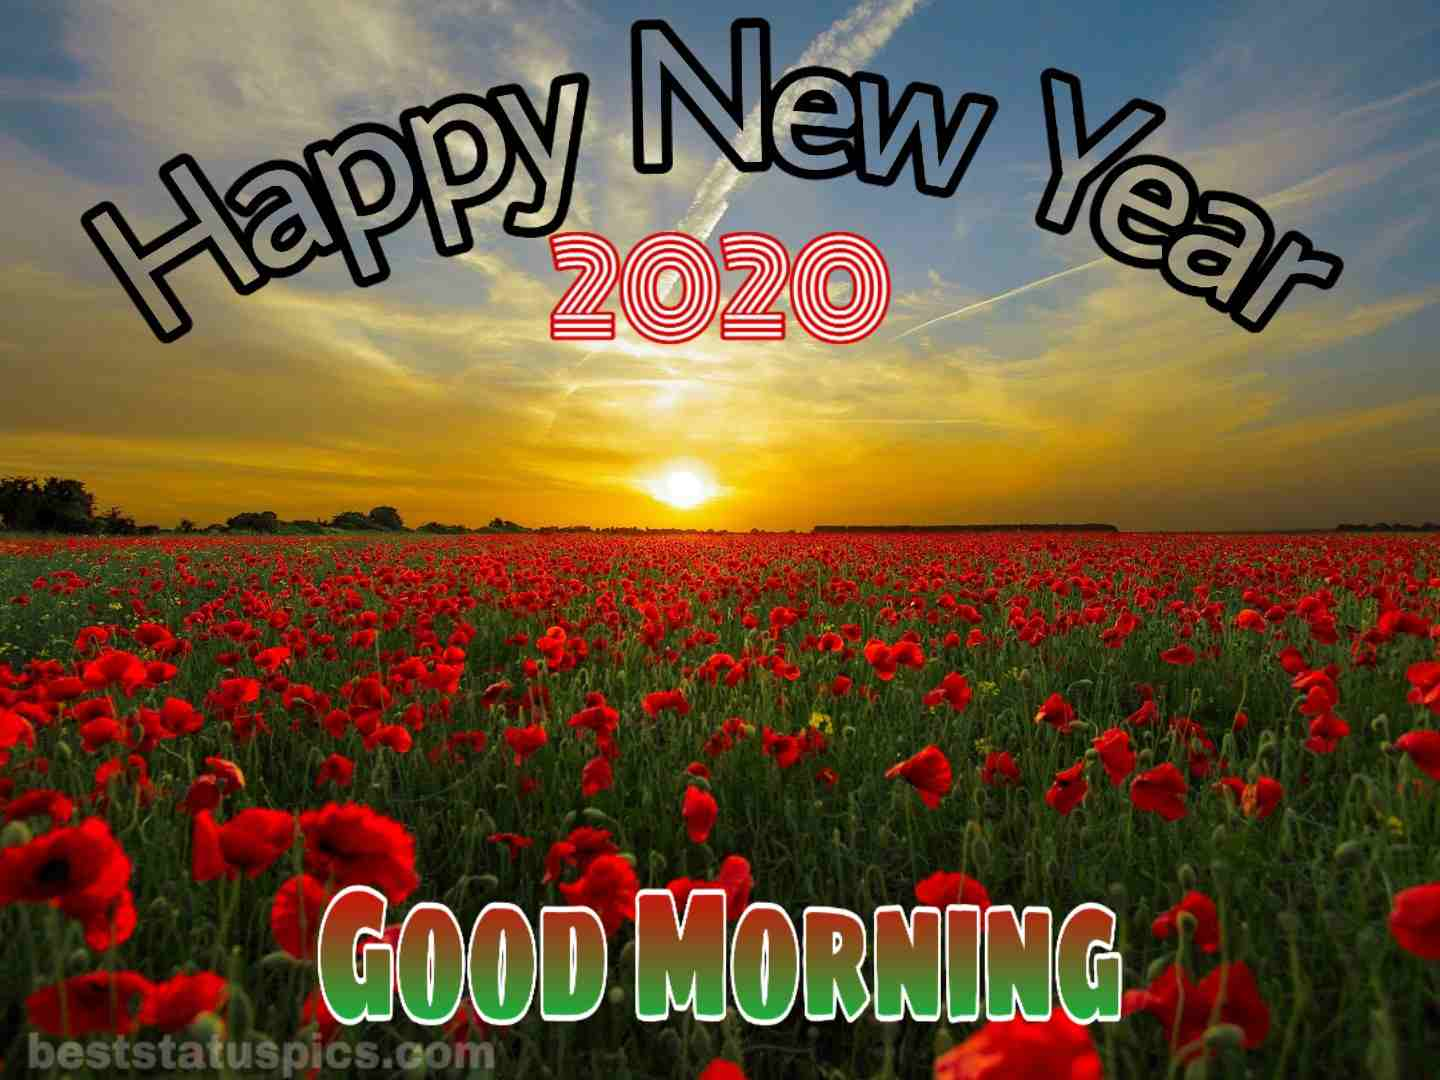 Good morning happy new year 2020 with roses